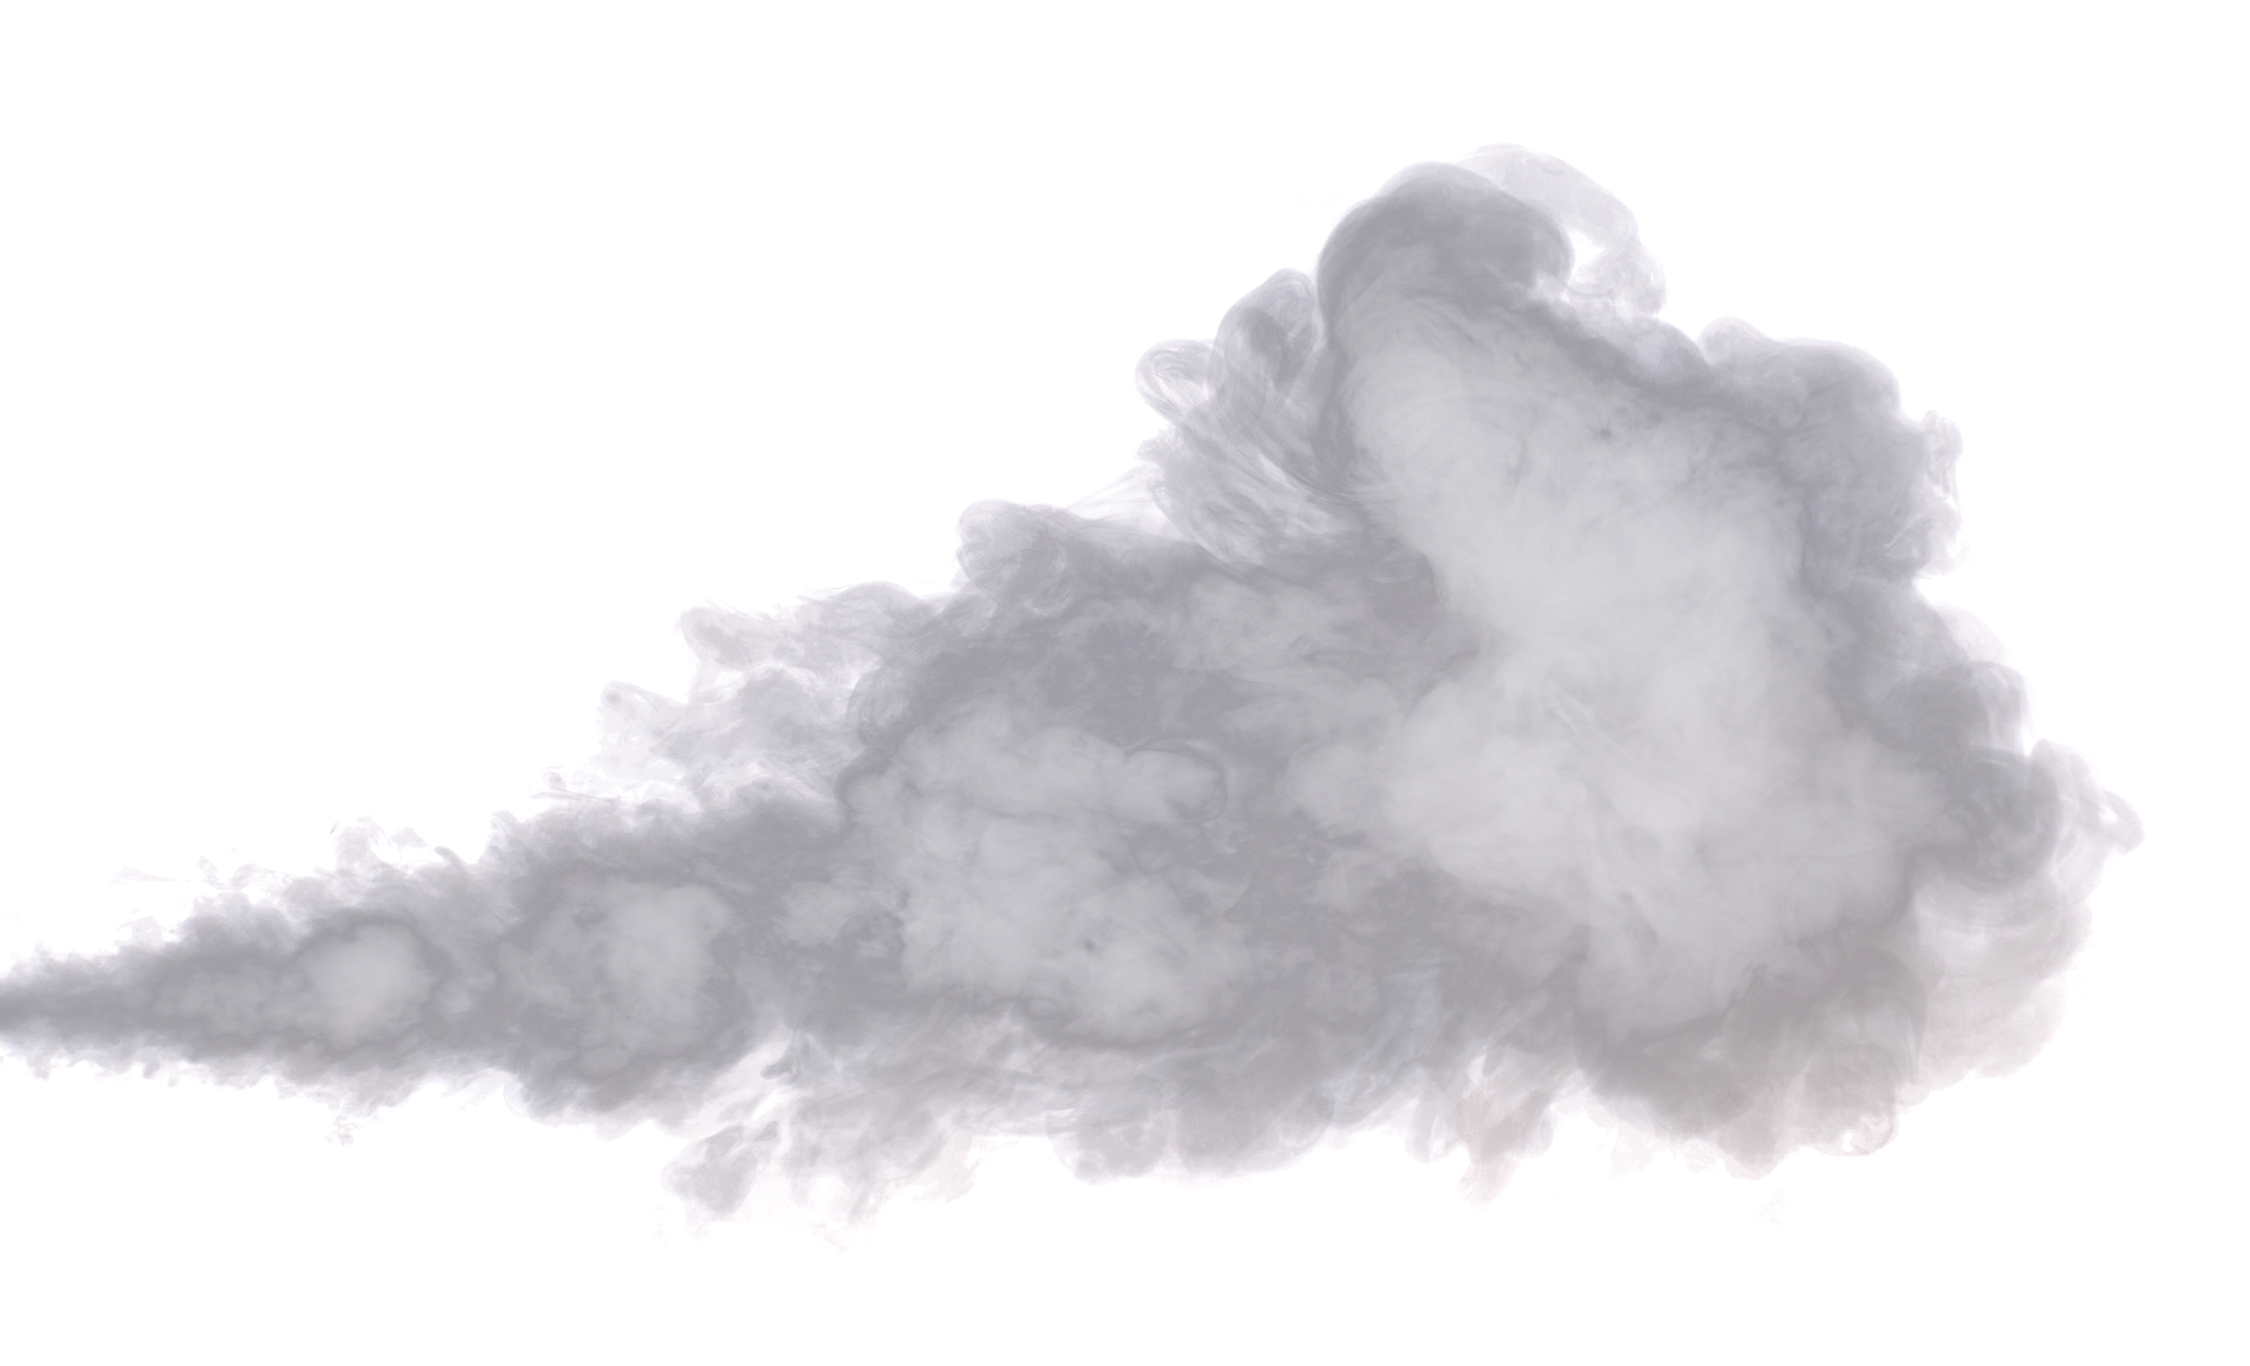 Mist drawing cloud. Smoke png image free